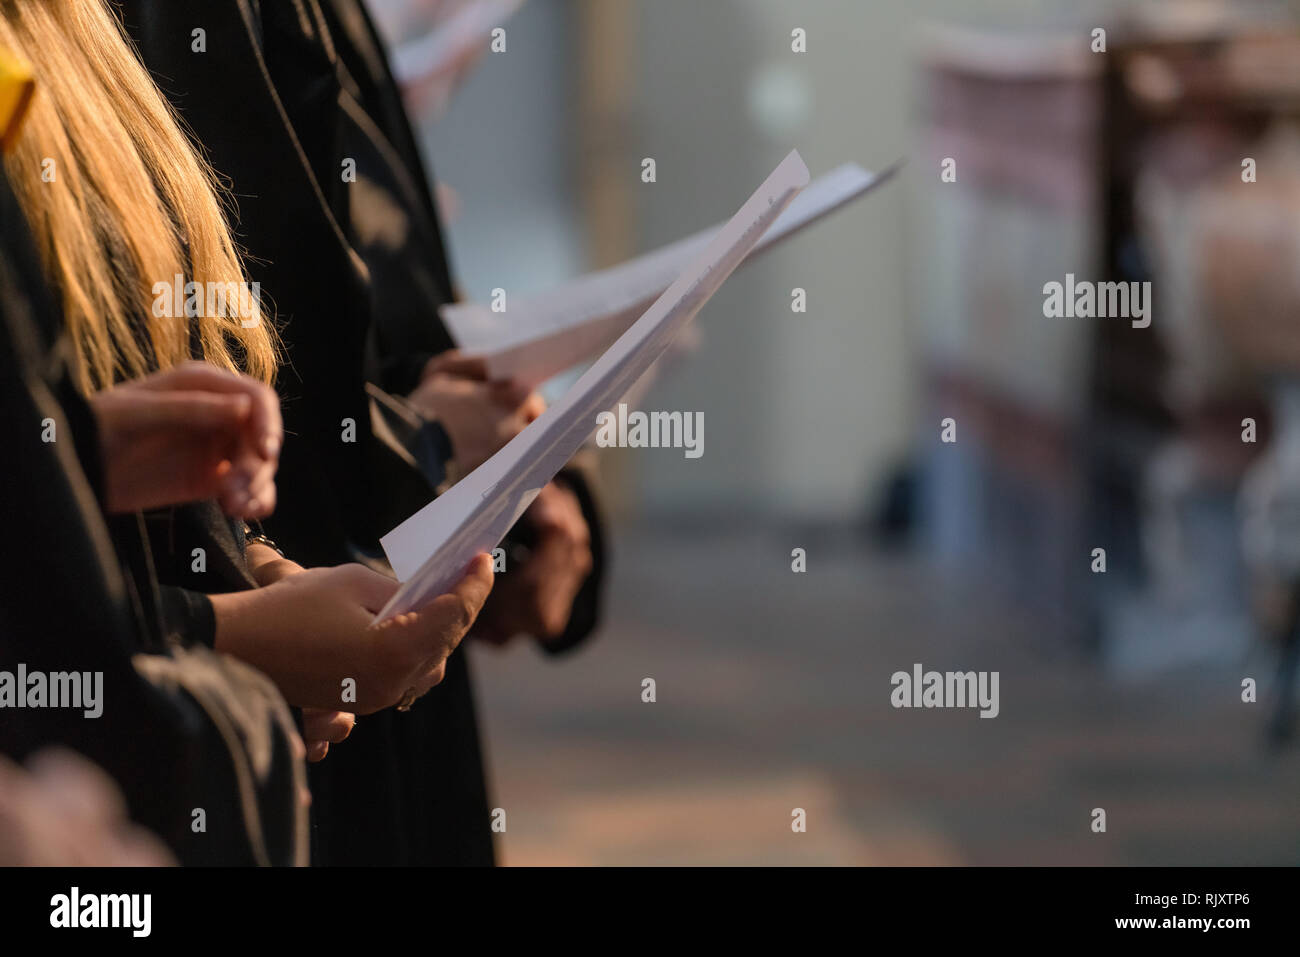 Choir singers holding musical score and singing on student graduation day in university, college diploma commencement - Stock Image